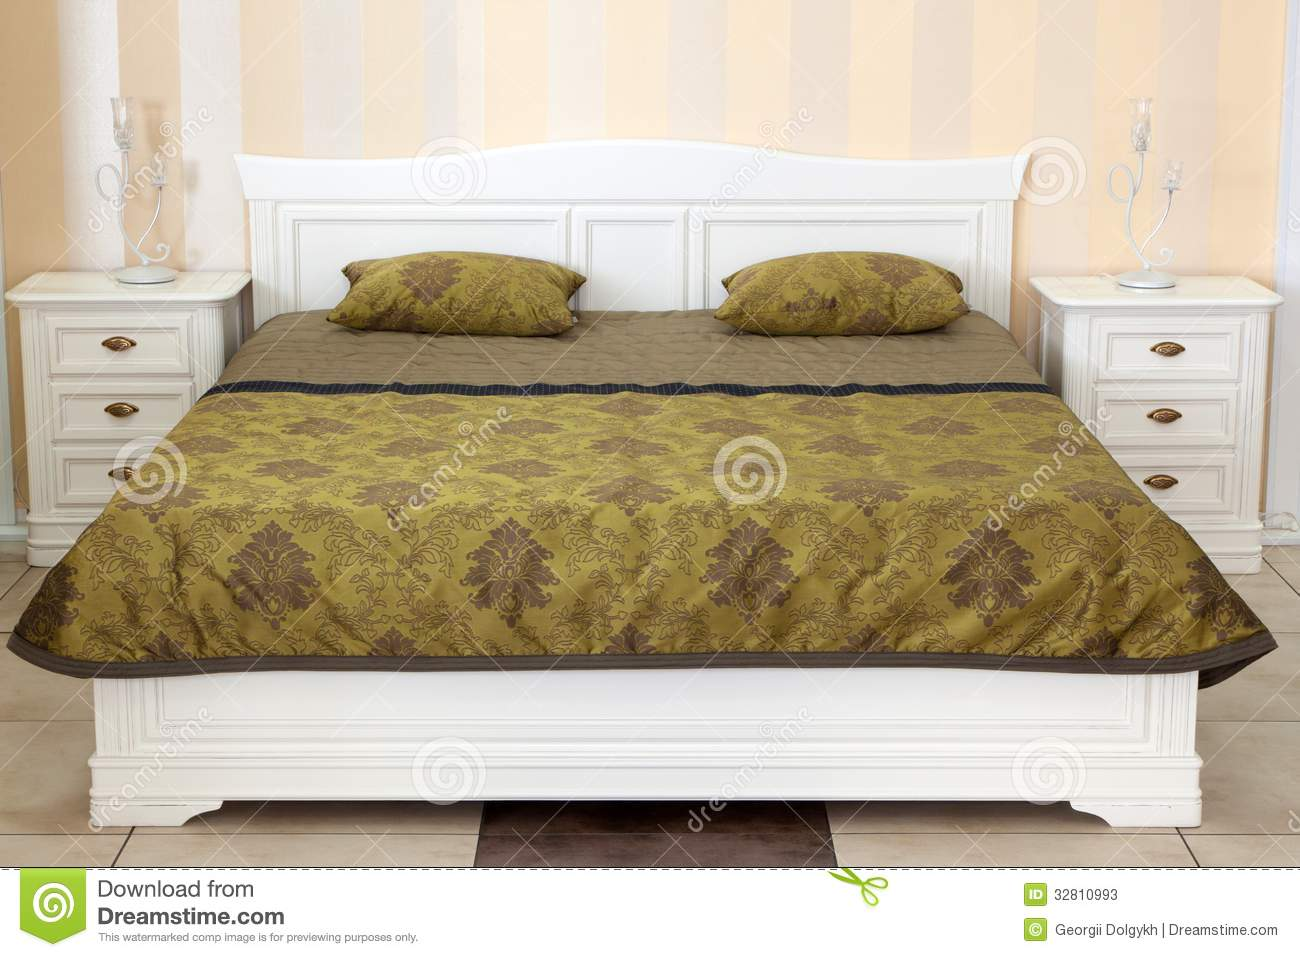 Modern Italian Style Bedroom Stock Photos - Image: 32810993 - Italian Style Bedroom Design